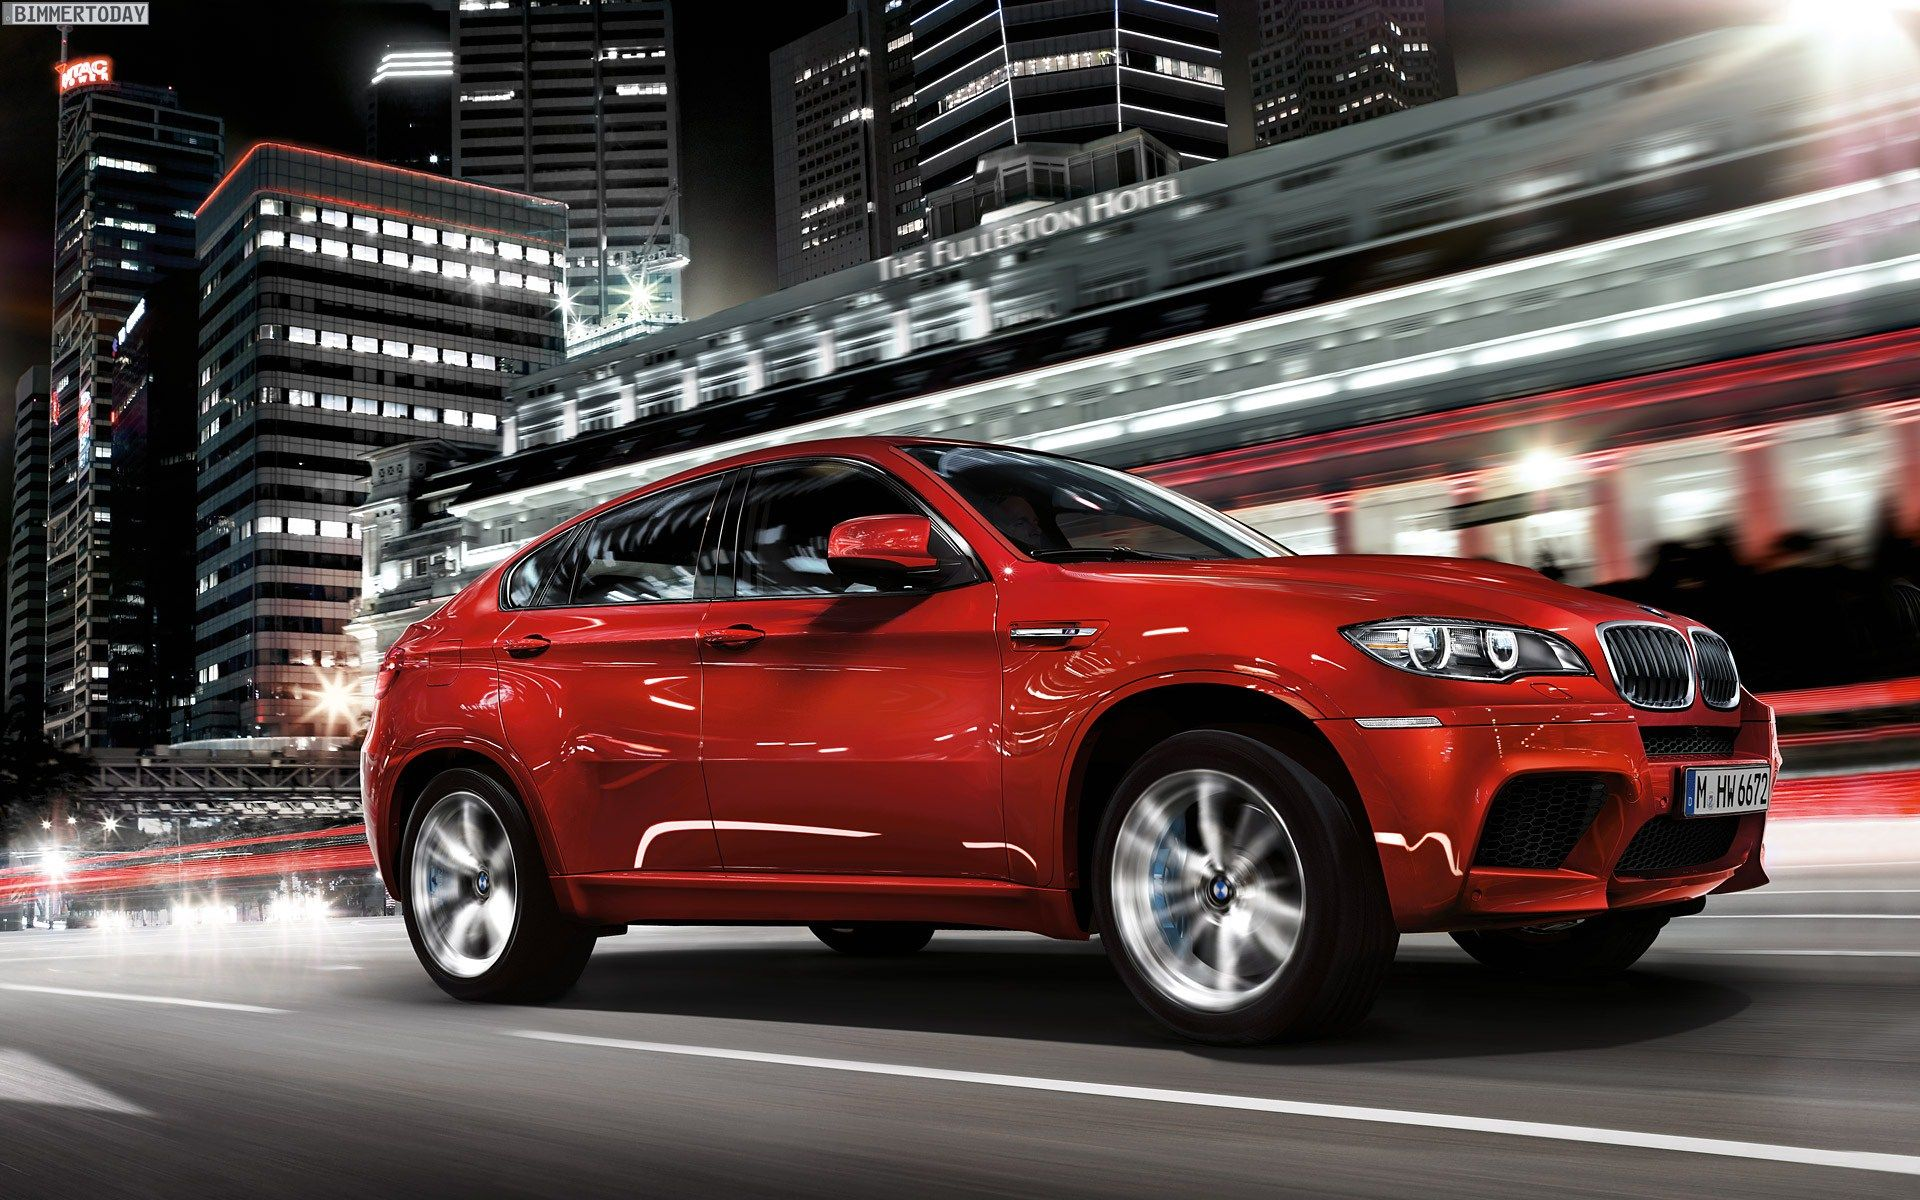 Bmw X6 Side View Car Pictures Car Wallpapers Information Bmw